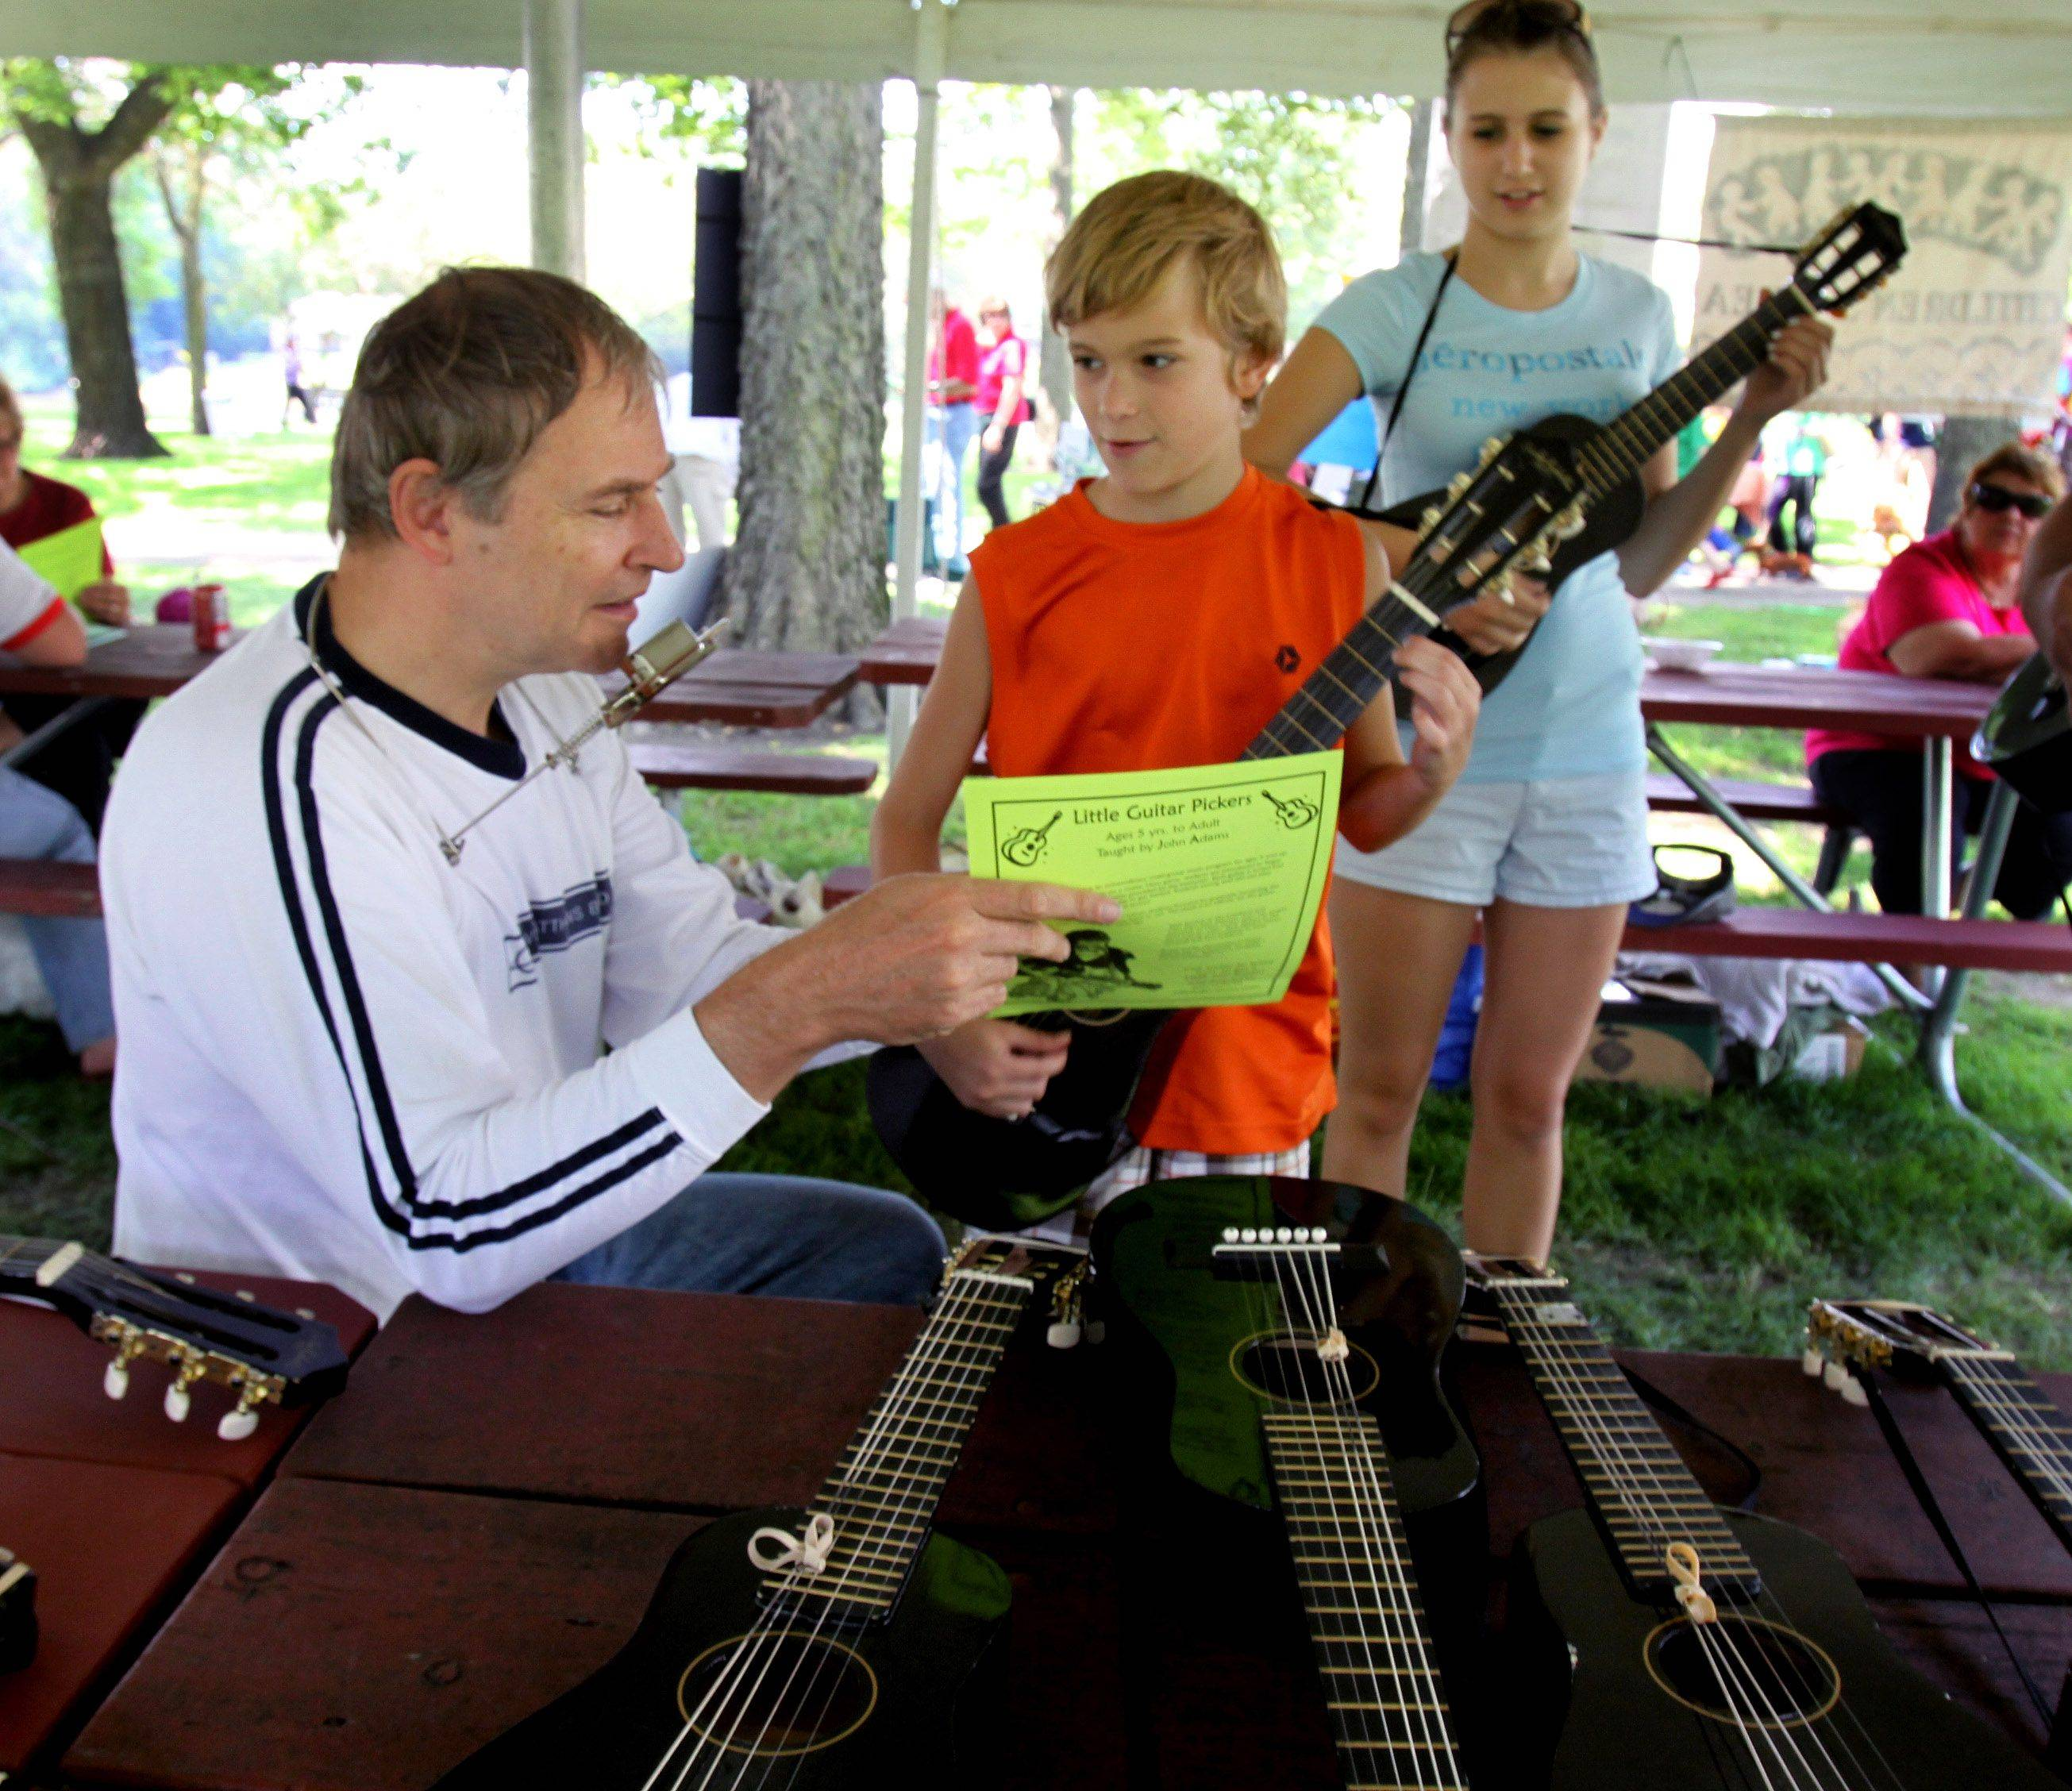 Kids' activities at the folk festival